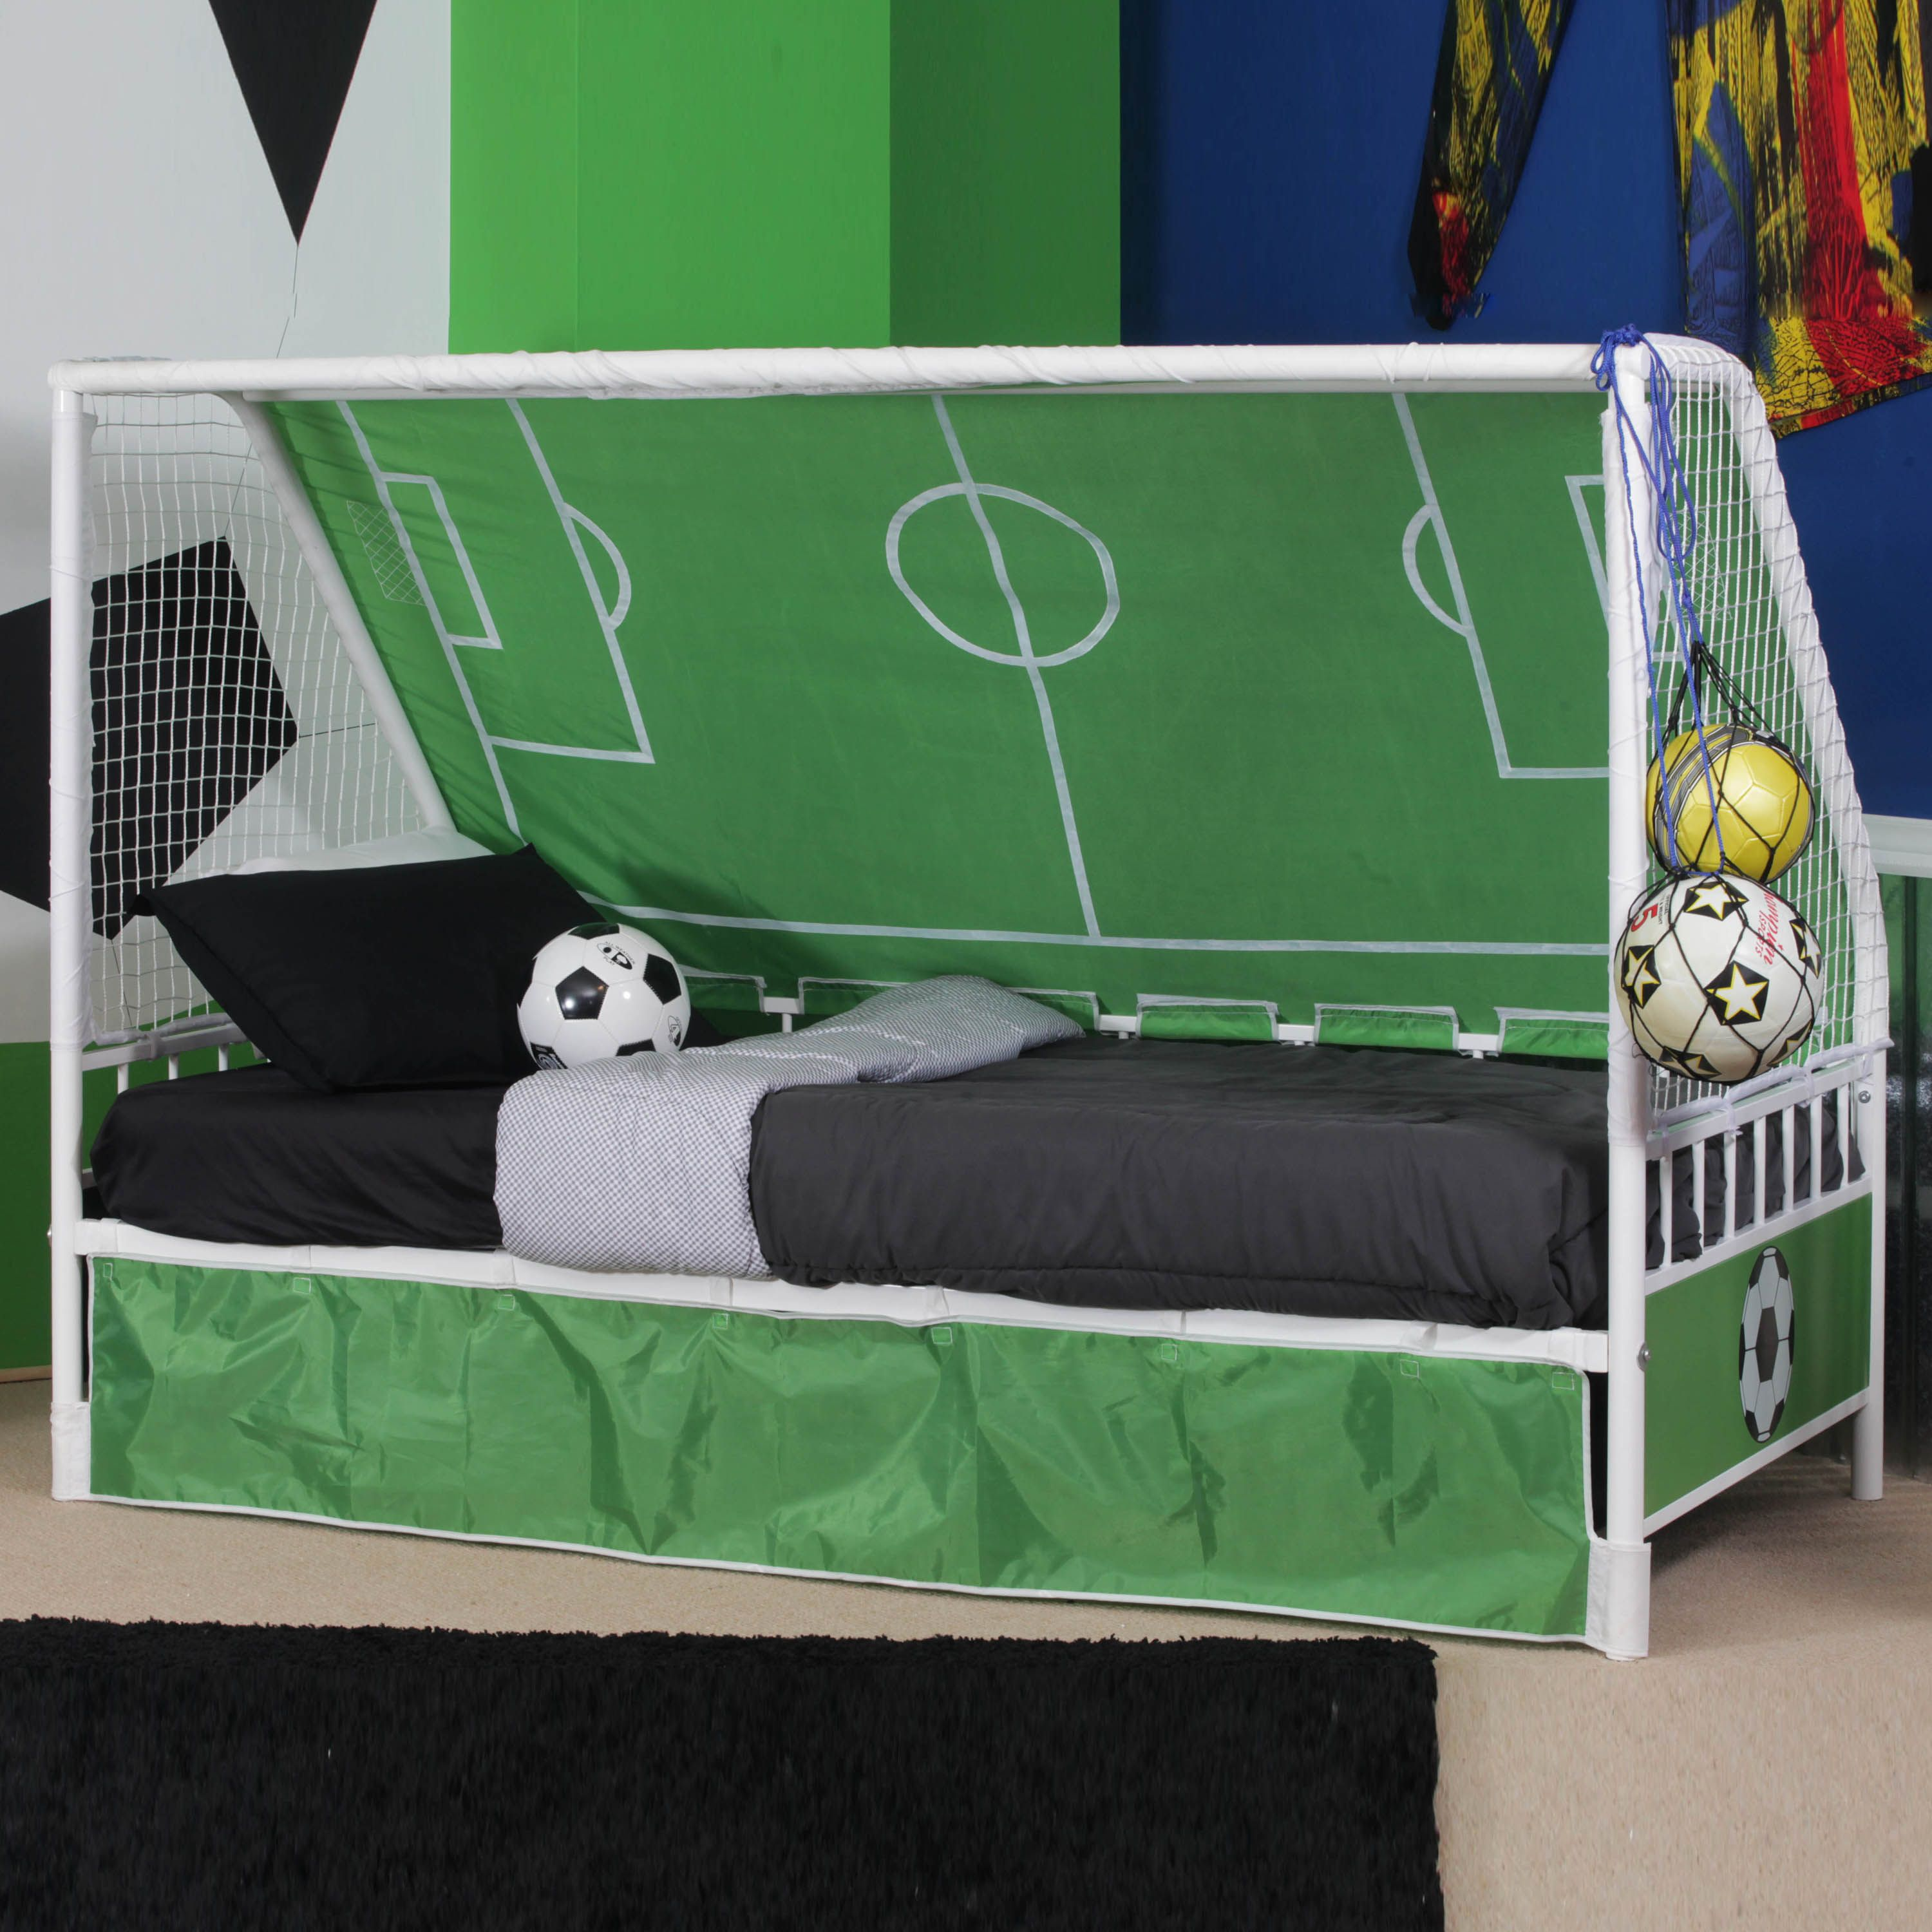 L Powell Goal Keeper Daybed Soccer bedroom, Soccer room